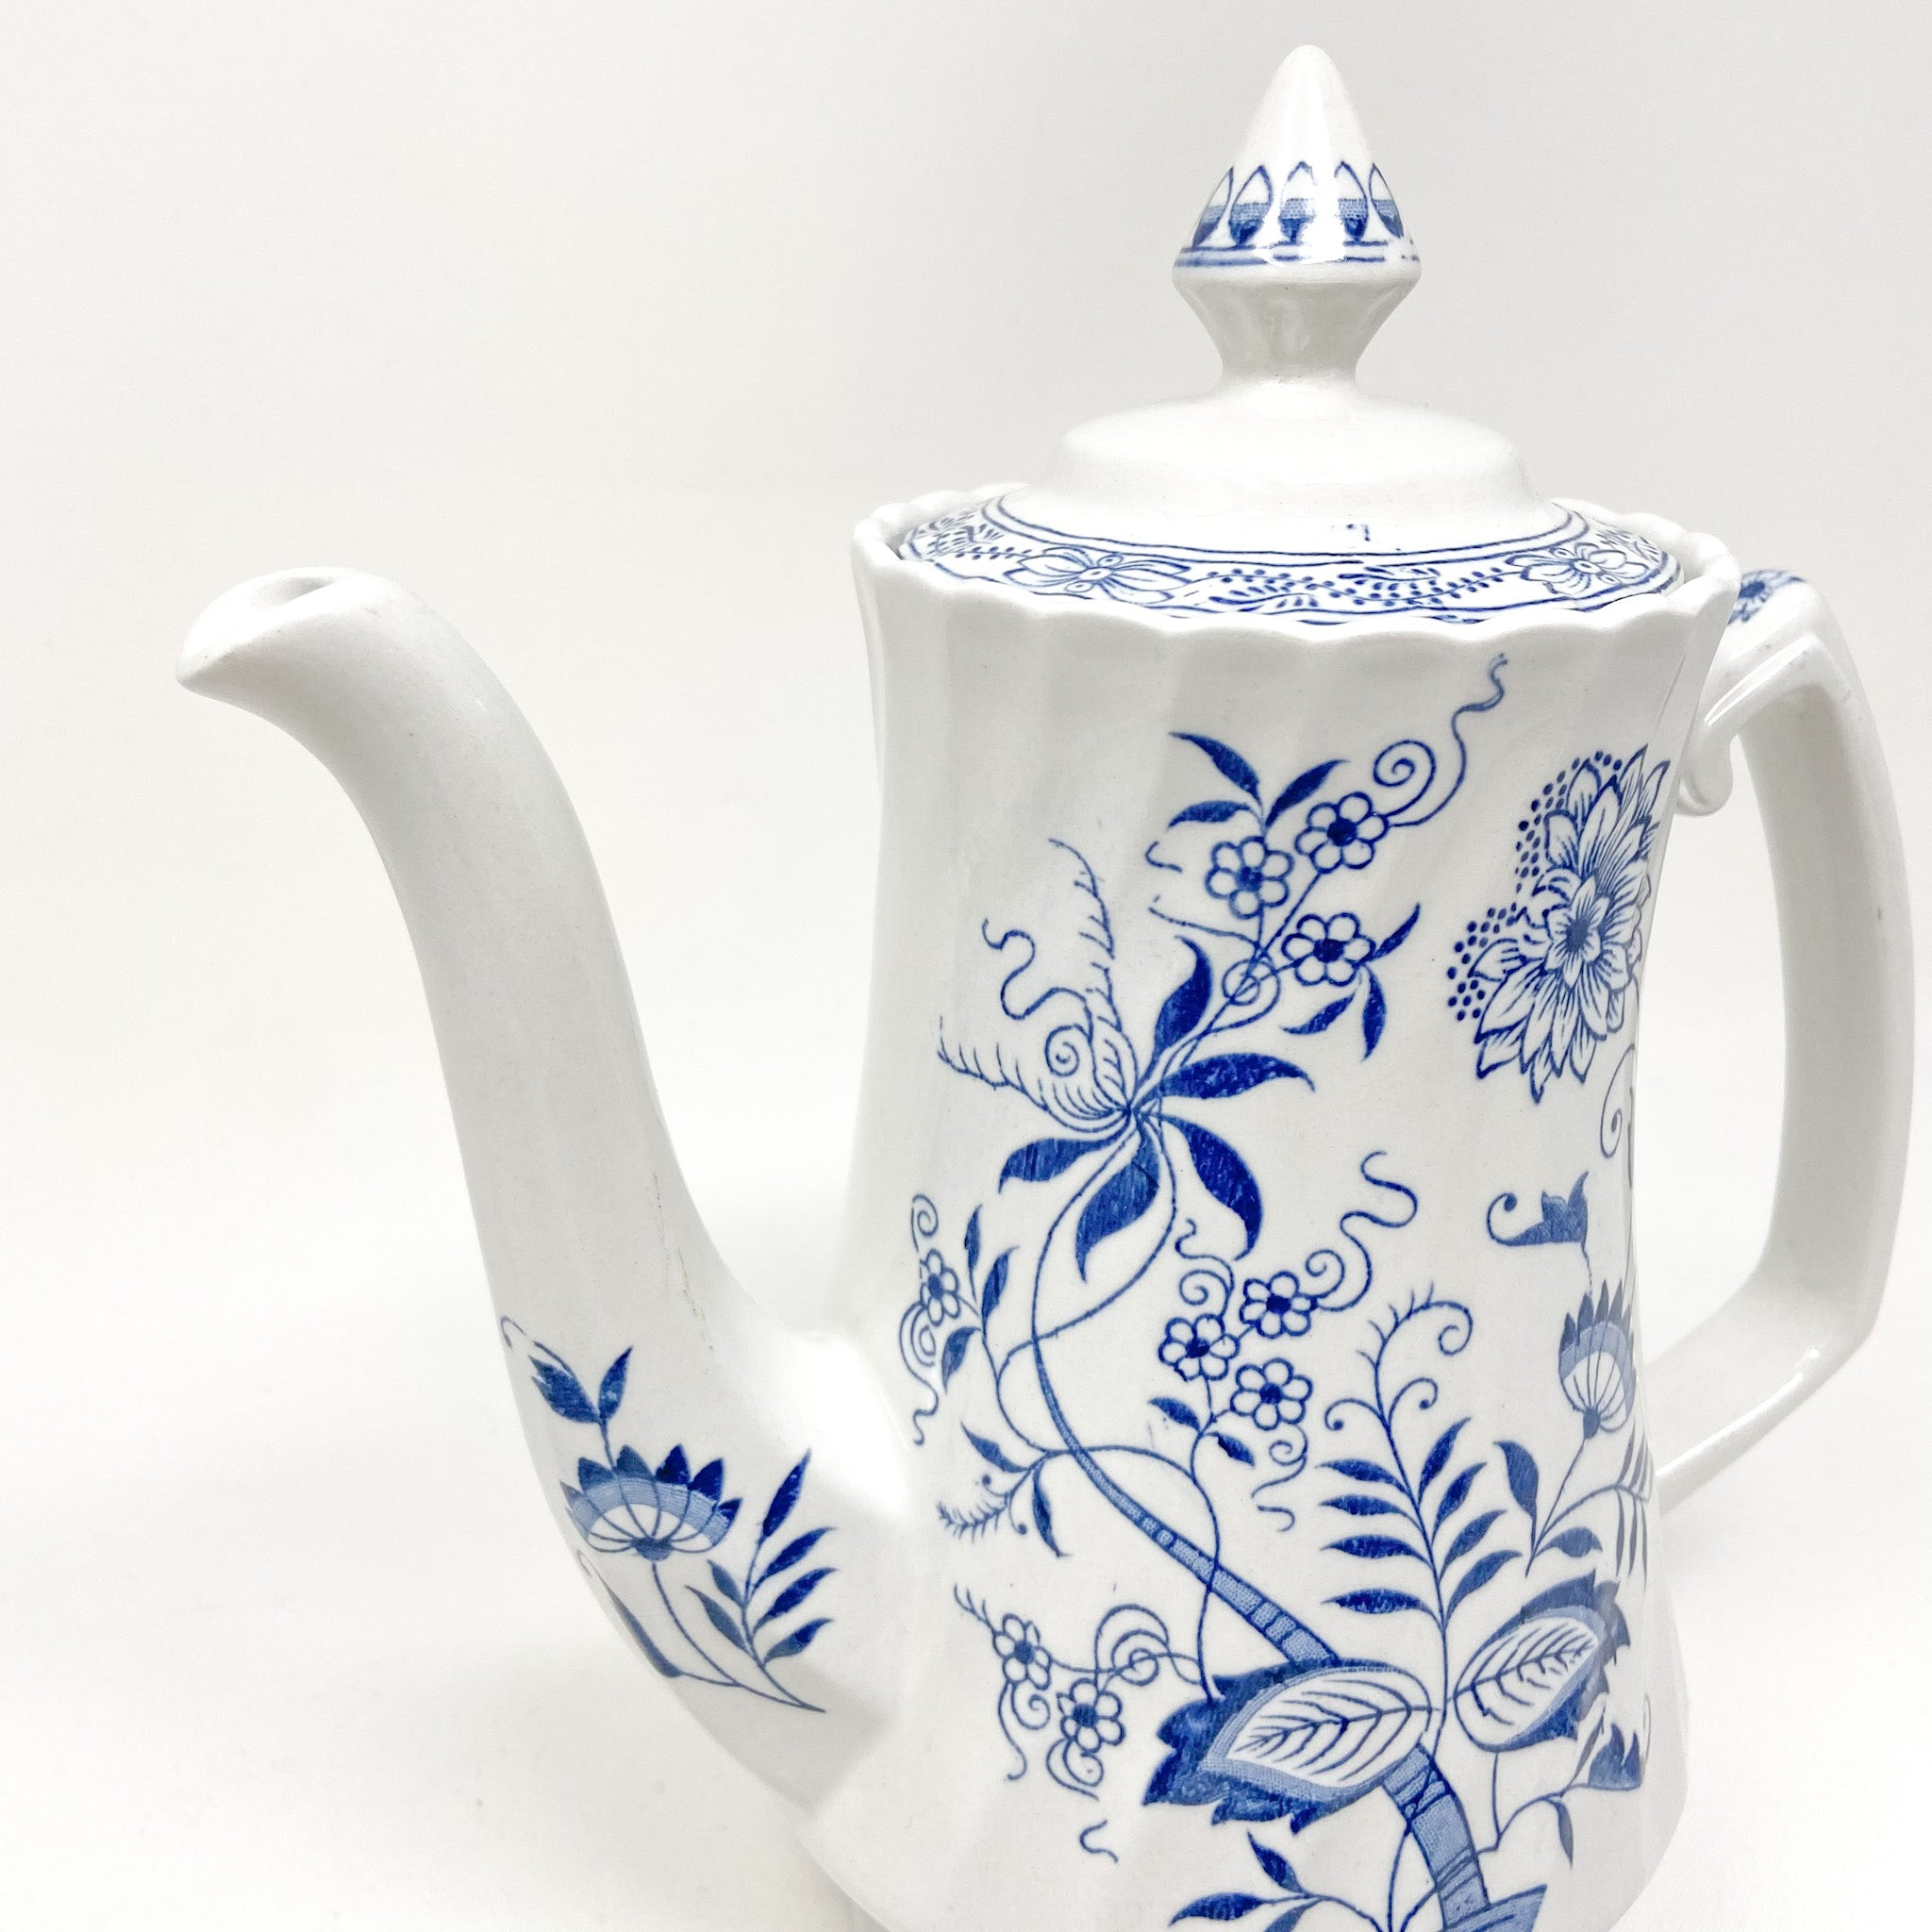 Tall coffee pot Blue Fjord Ironstone Wood & Sons England Genuine Hand Engraving Detergent Proof Old Staffordshire floral blue and white with lid removed scalloped rim point lid